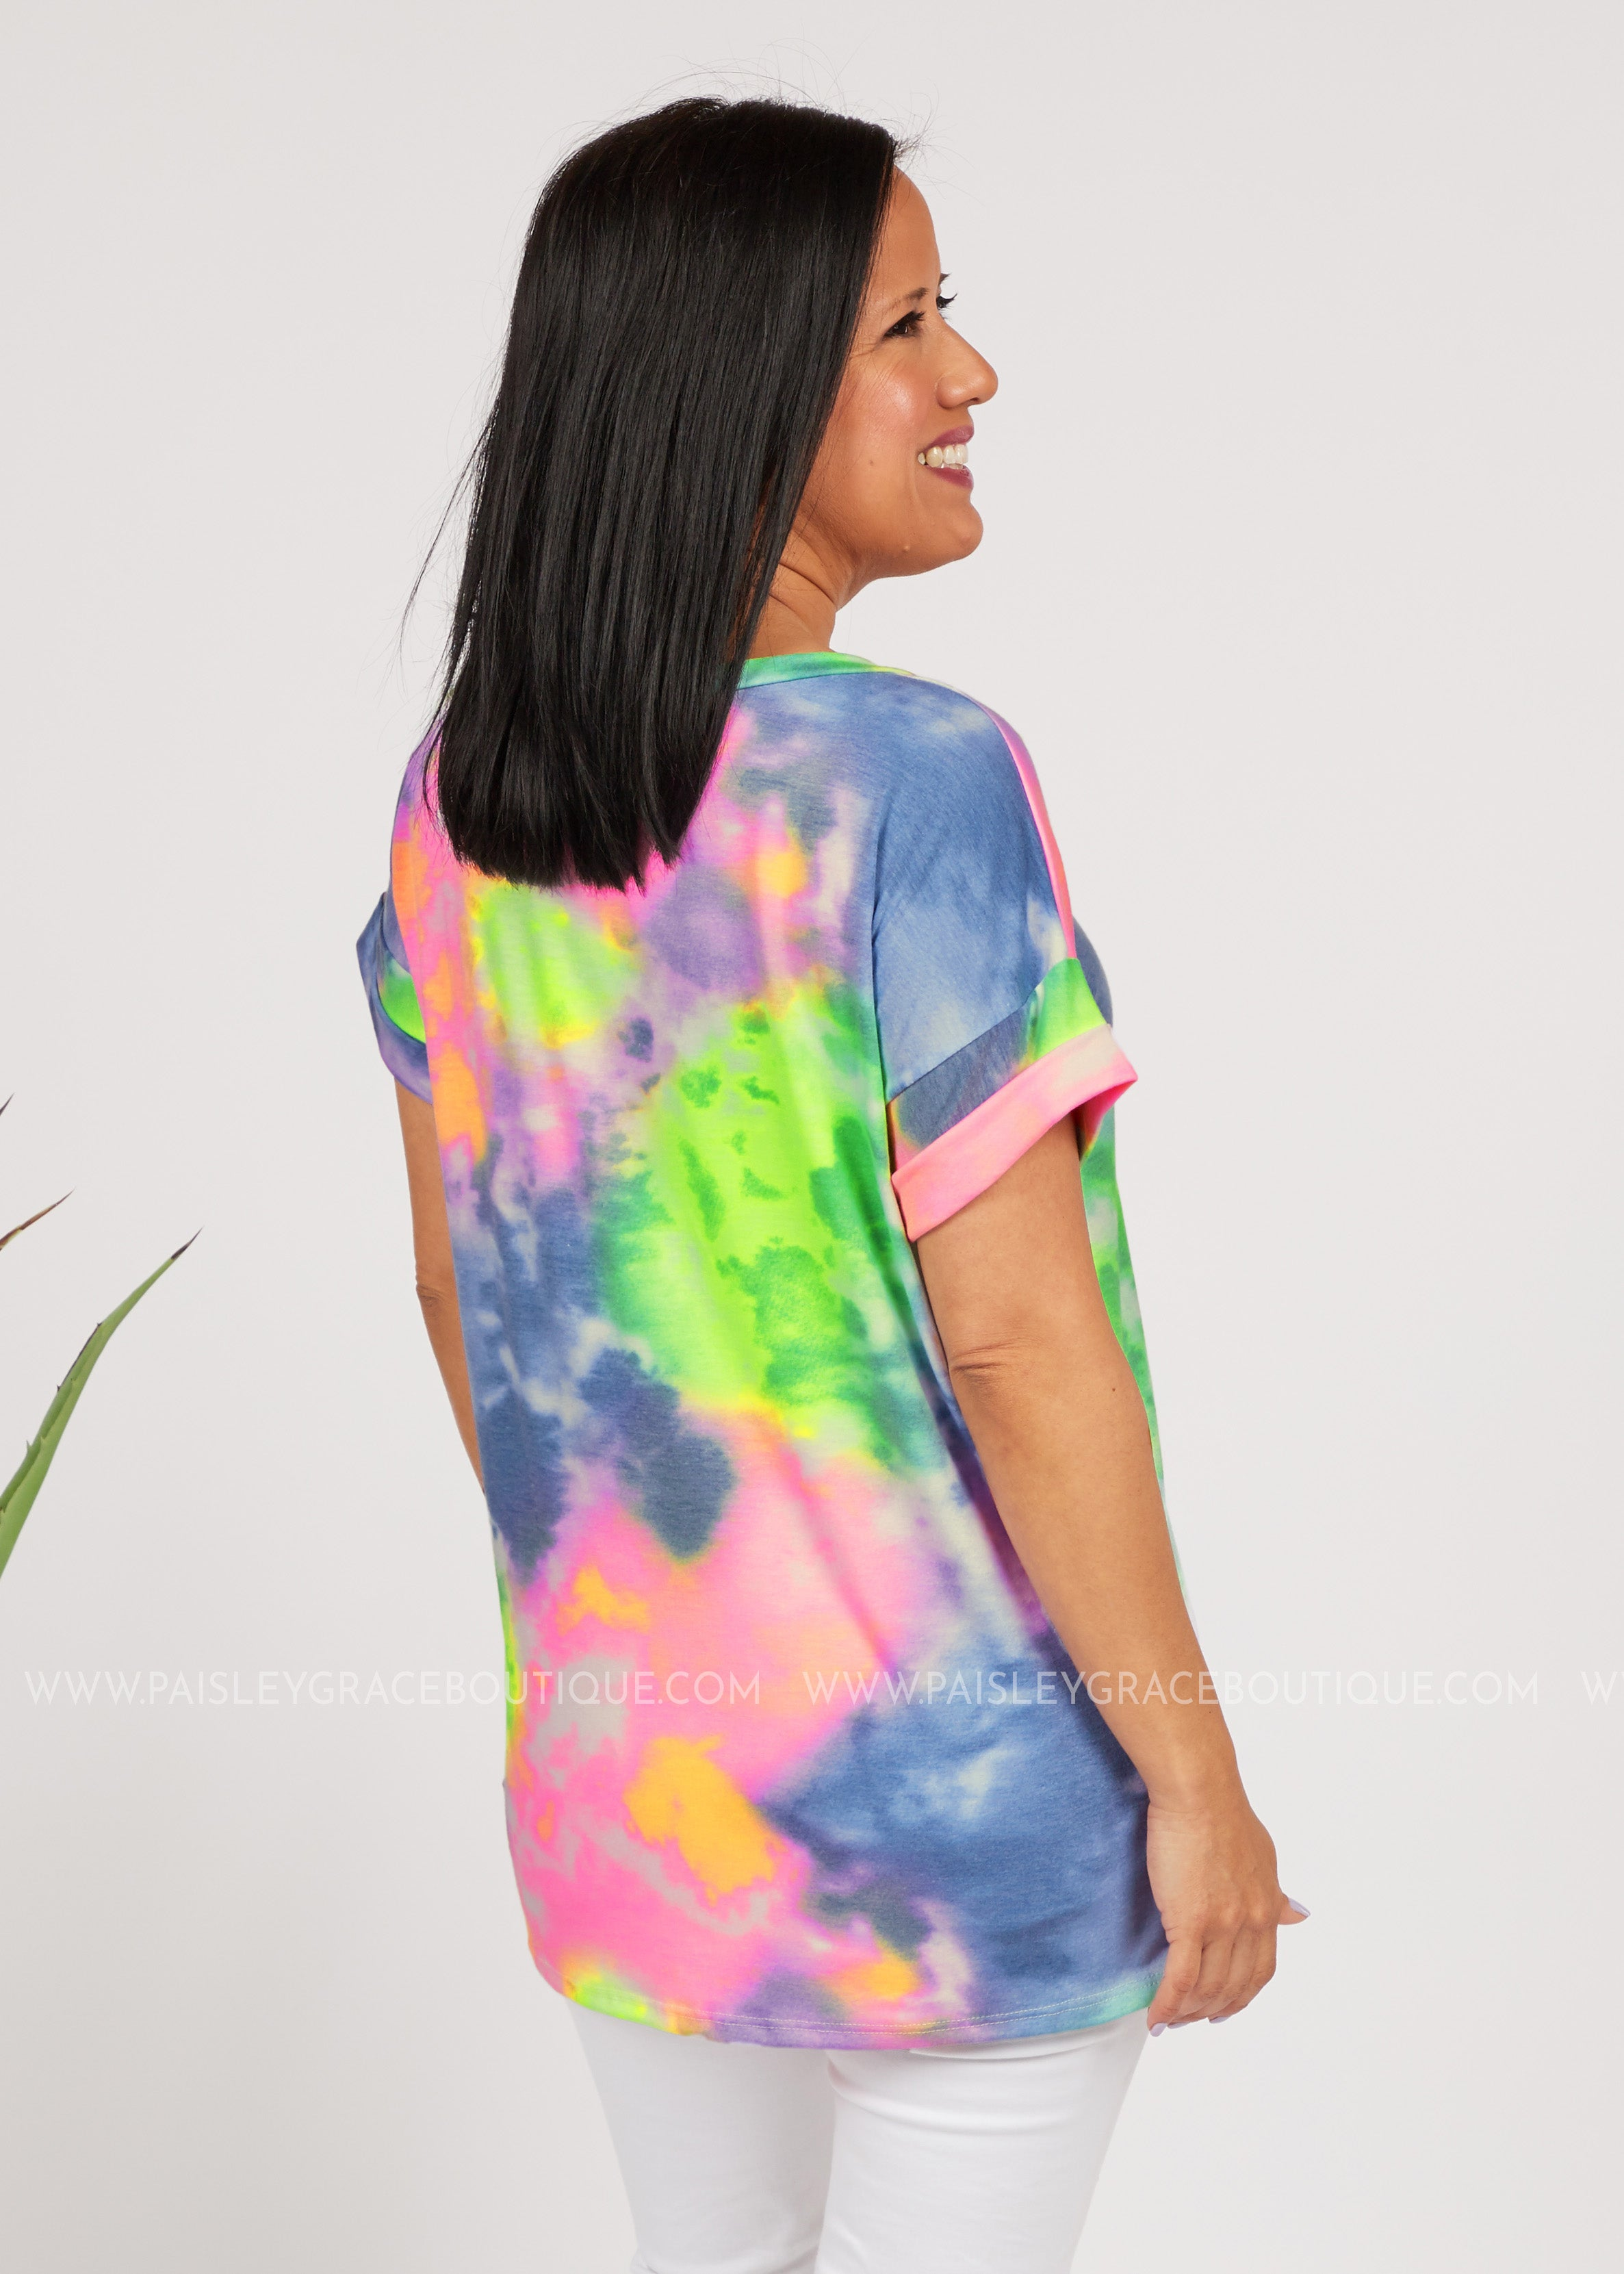 Basic Needs Tee-TIEDYE  - FINAL SALE